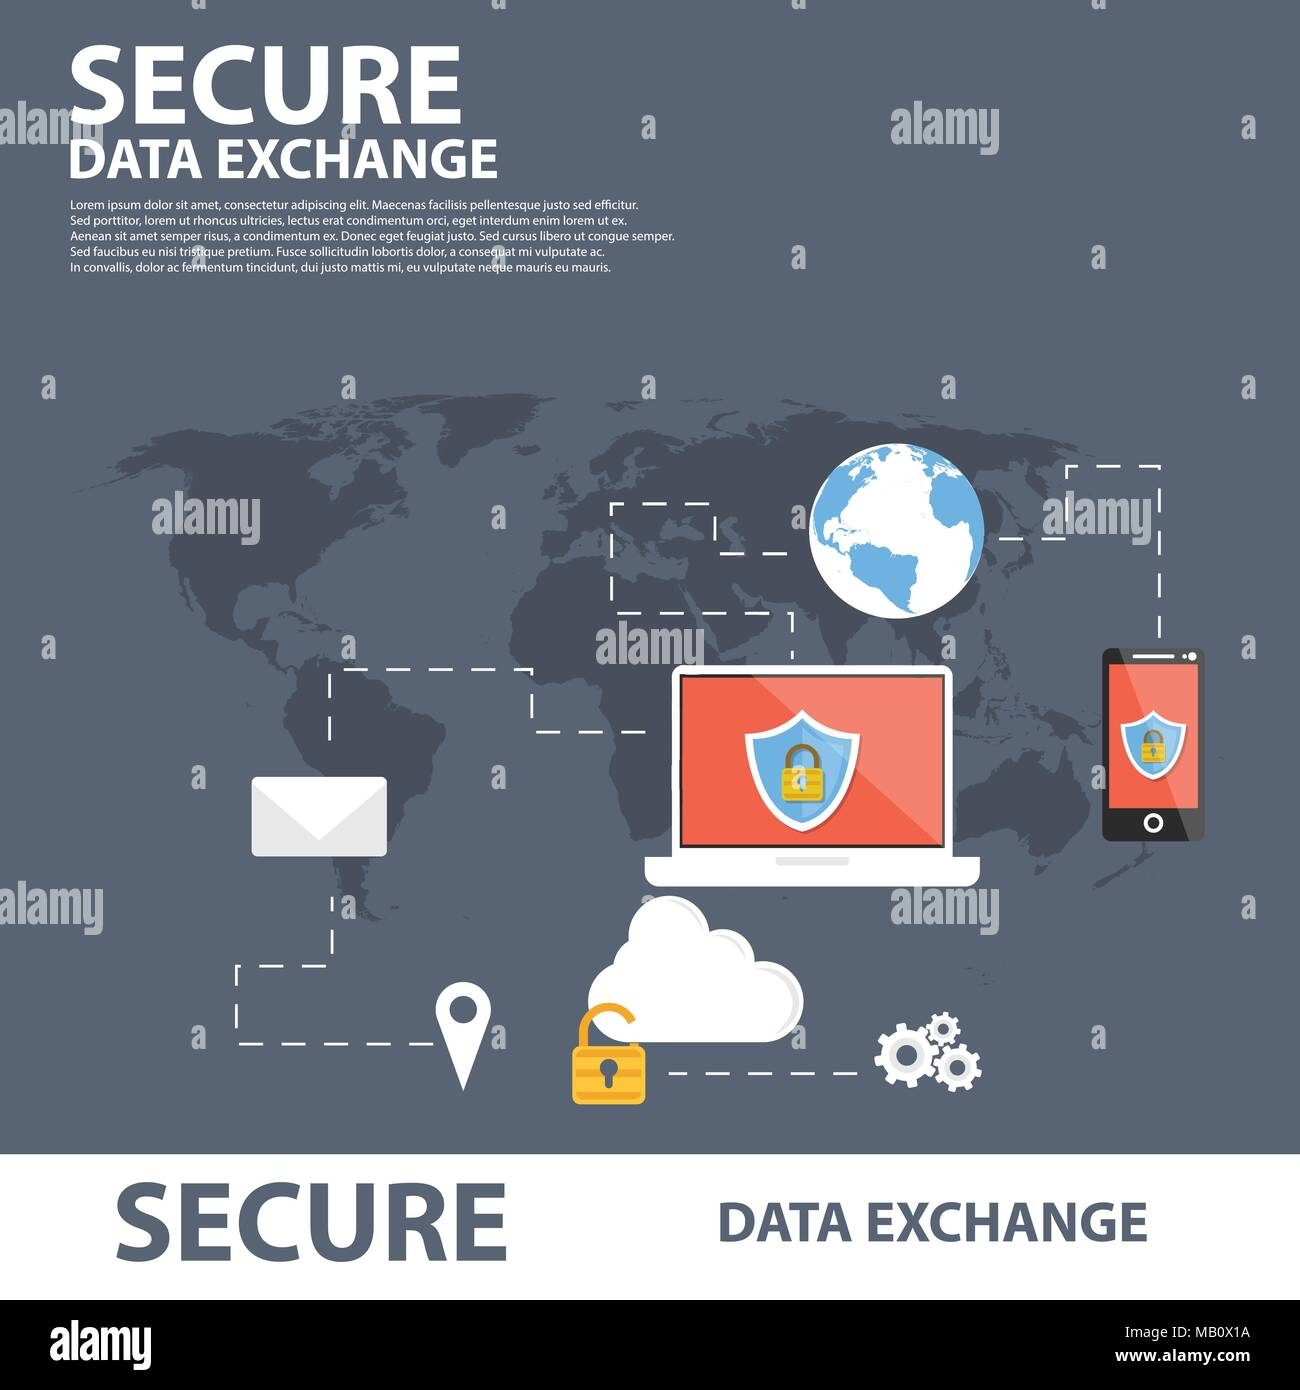 Secure Data Exchange Flat Icon Banner Concept - Stock Vector